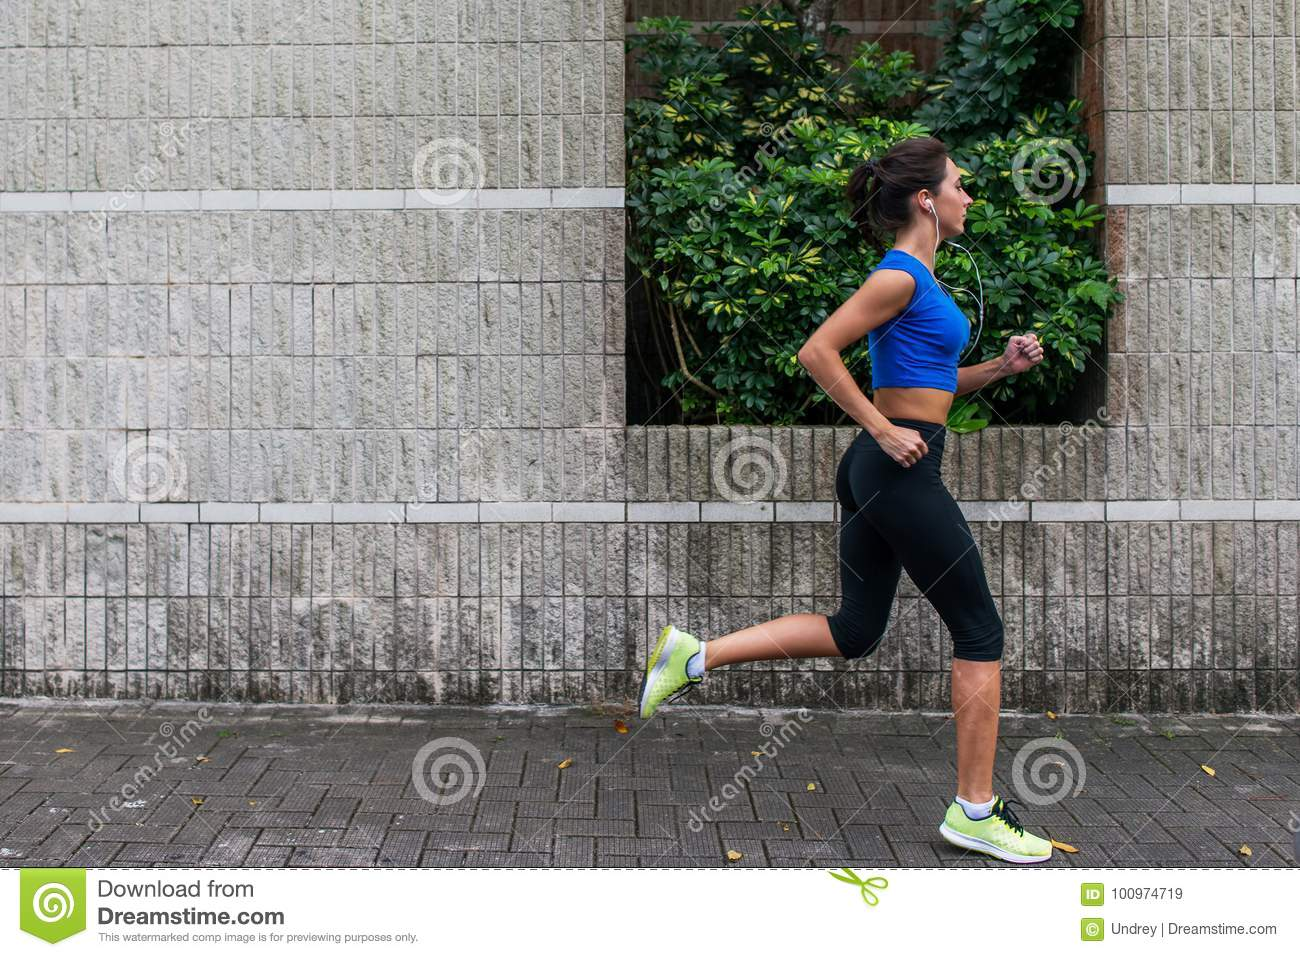 Profile view of a sporty young woman working out outdoors. Fitness girl running on sidewalk.